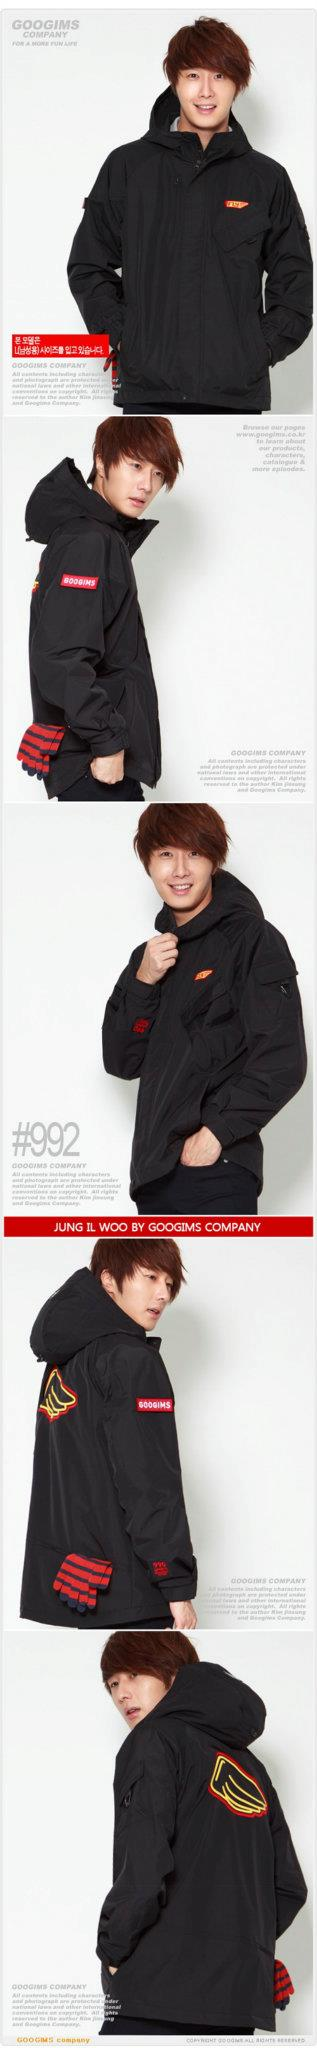 2011 10 Jung II-woo for Googims. Part 100003